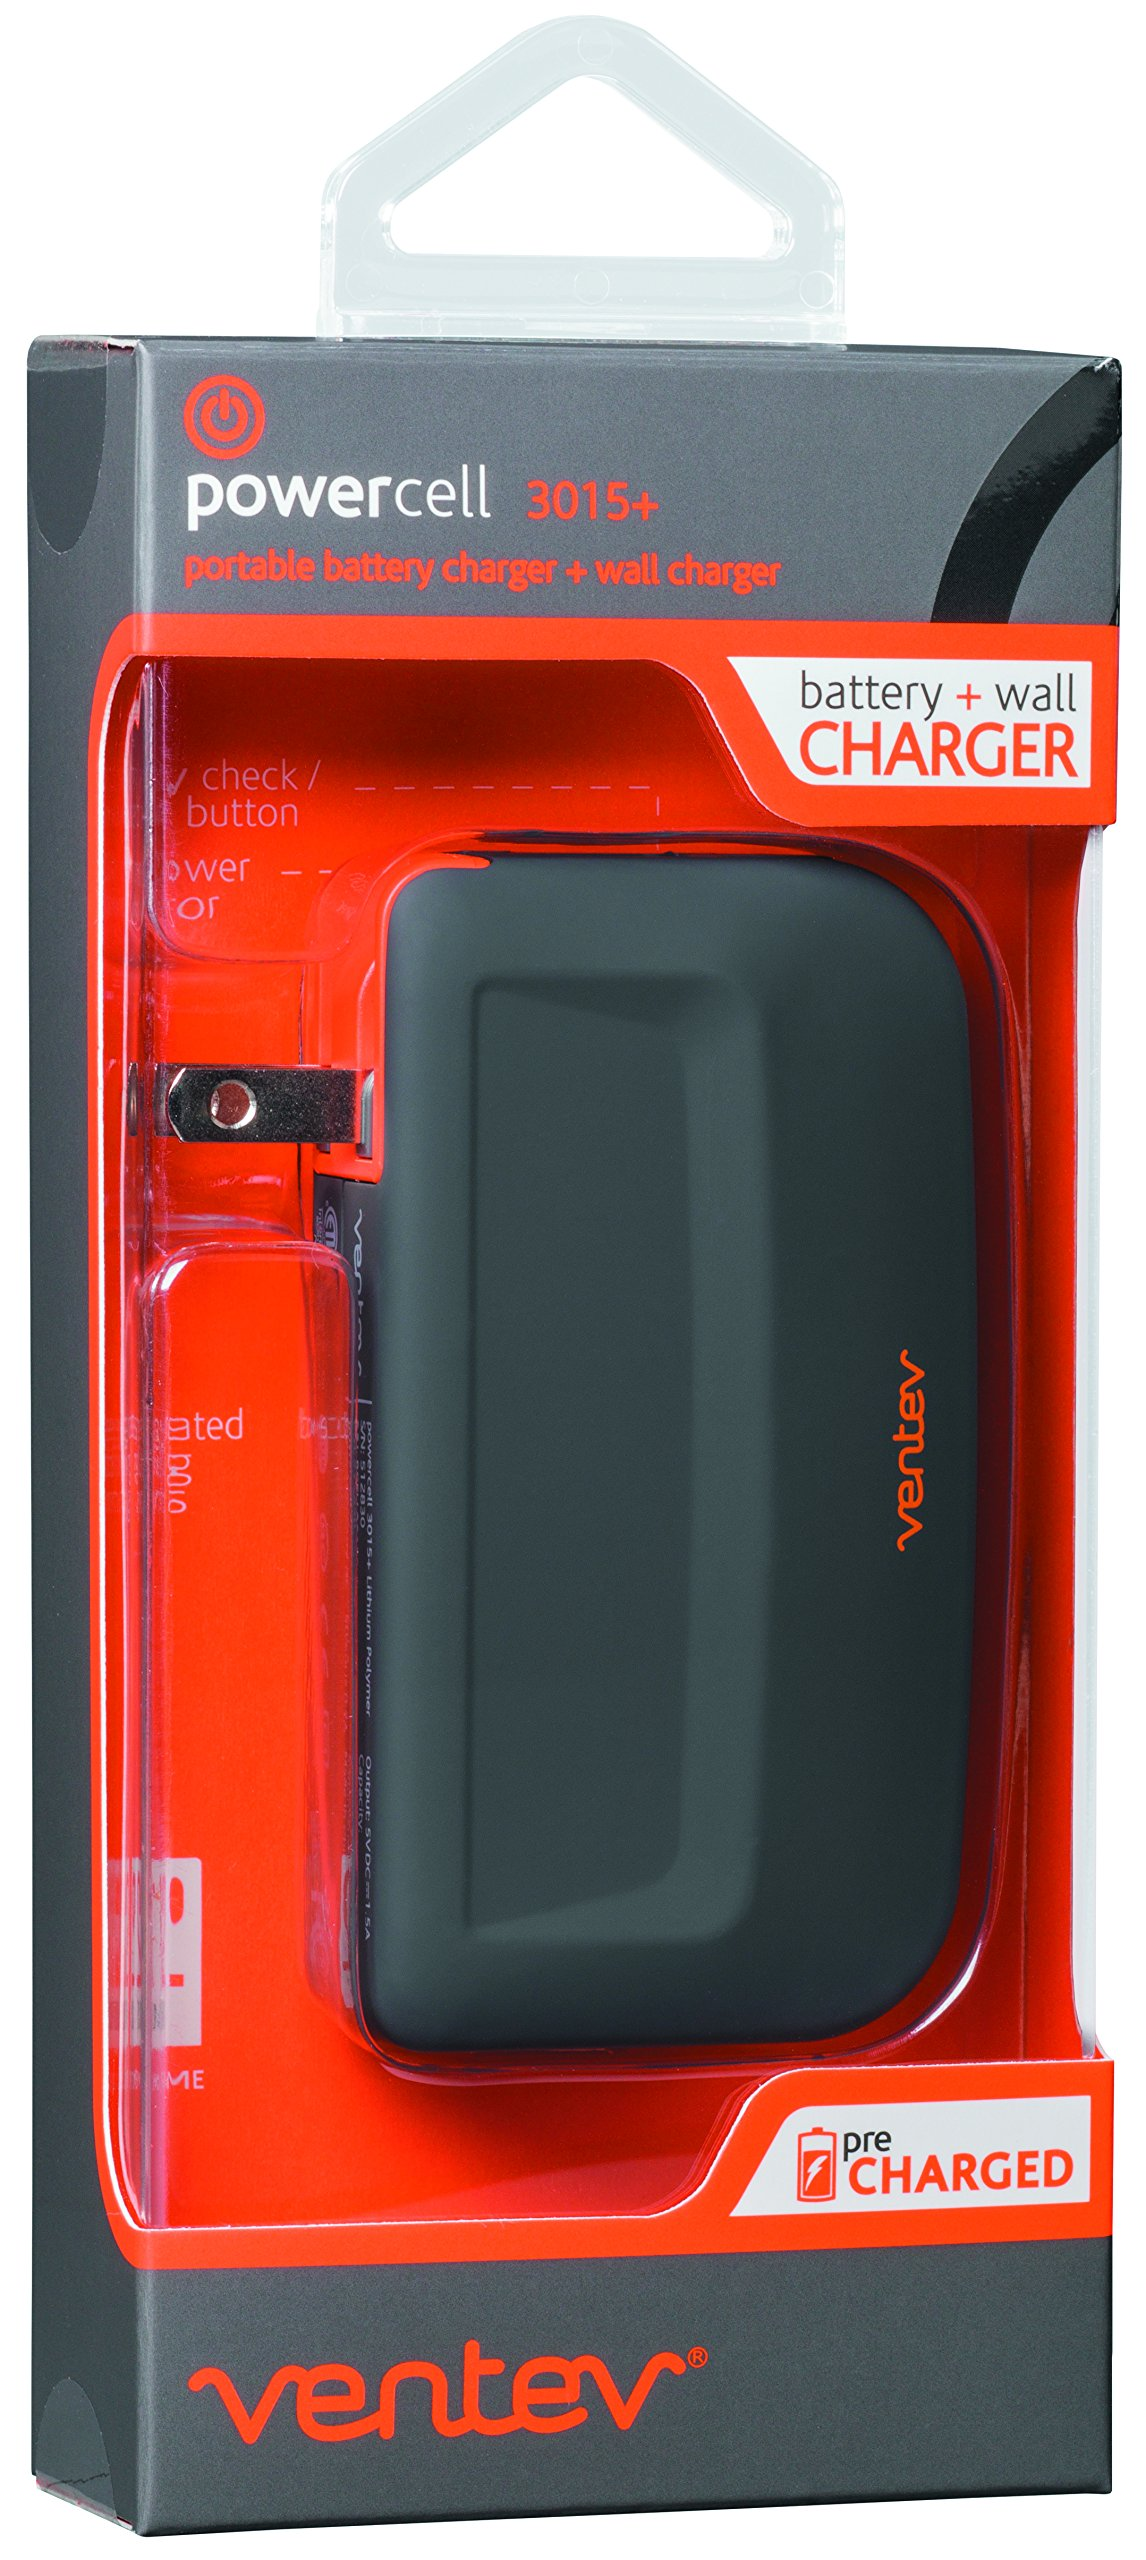 Ventev powercell 3015+, 3000mAh Portable Battery and Wall Charger in One Device by Ventev